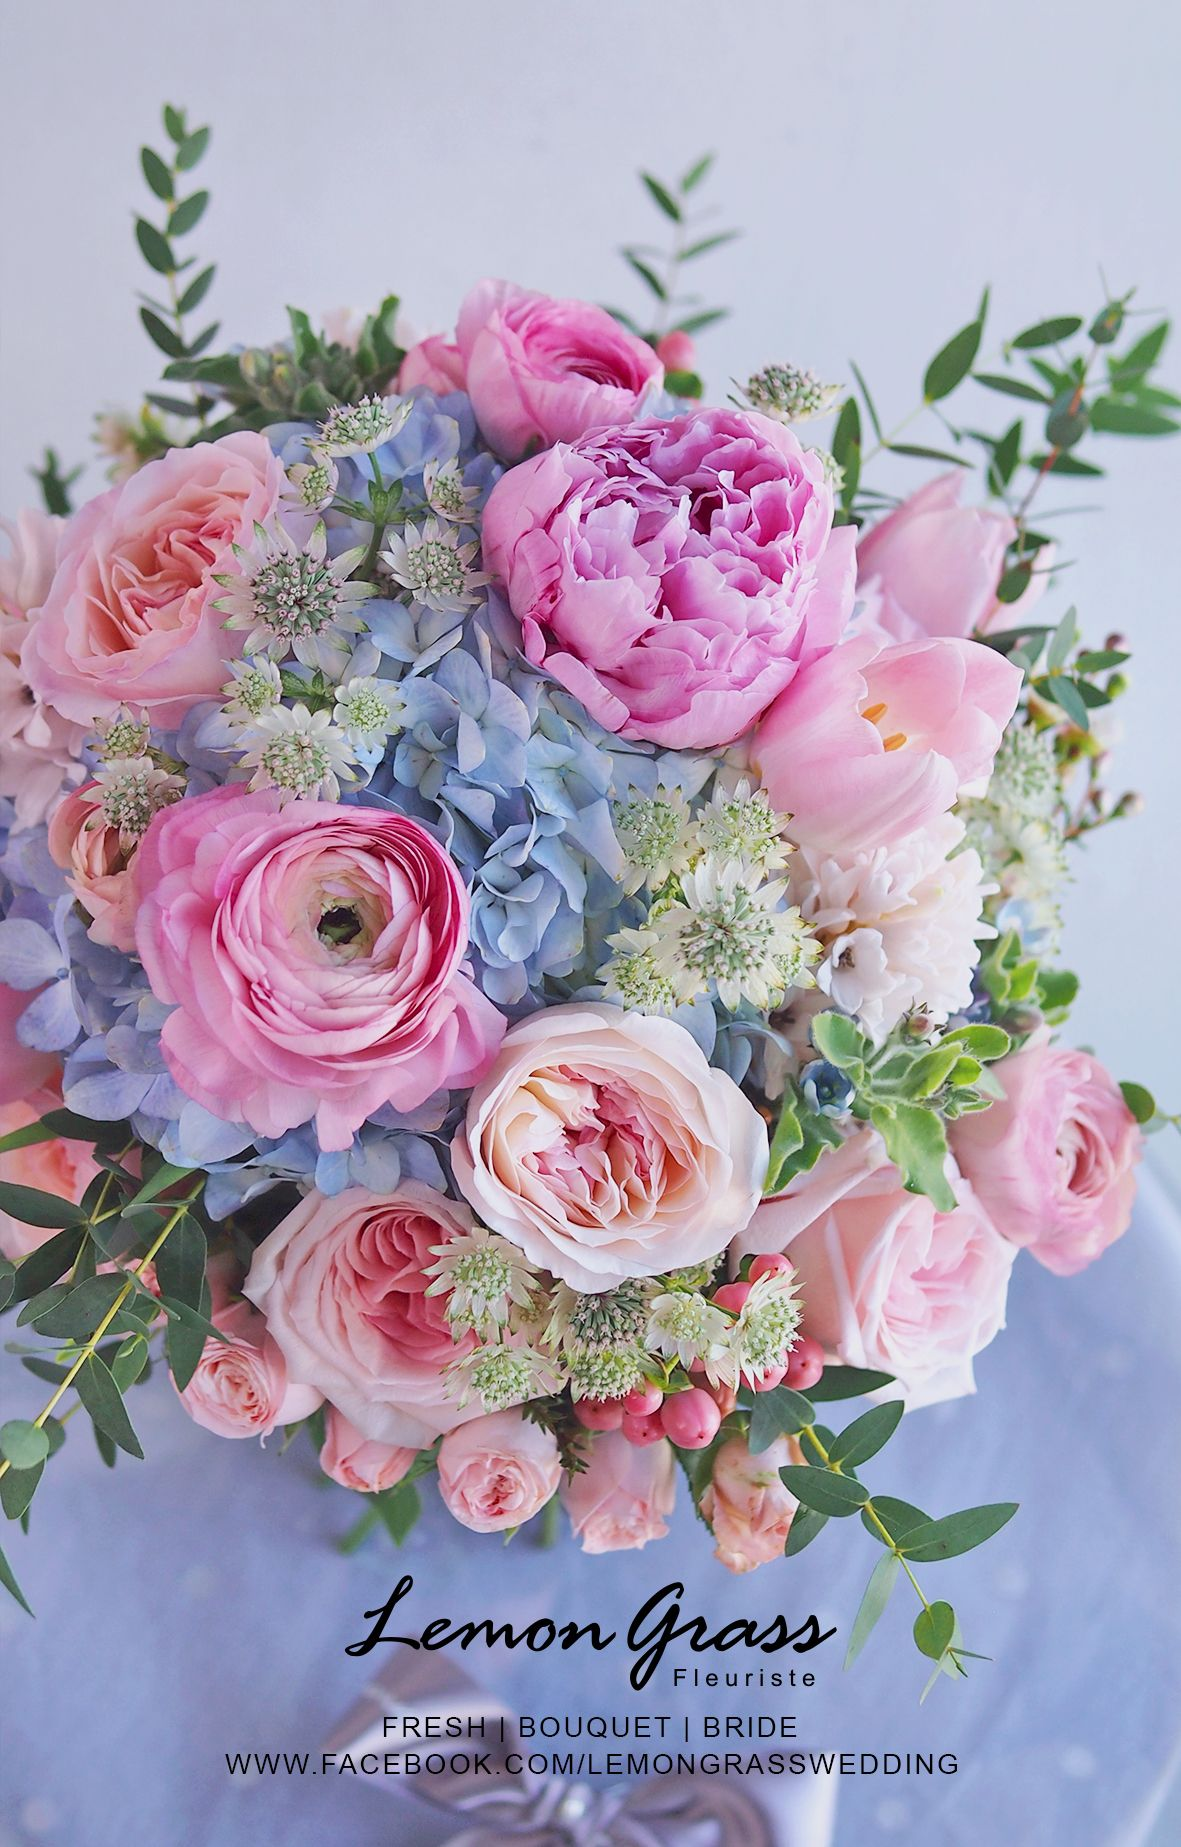 Pin By Lemongrasswedding On Fresh Flower Bouquets Pinterest